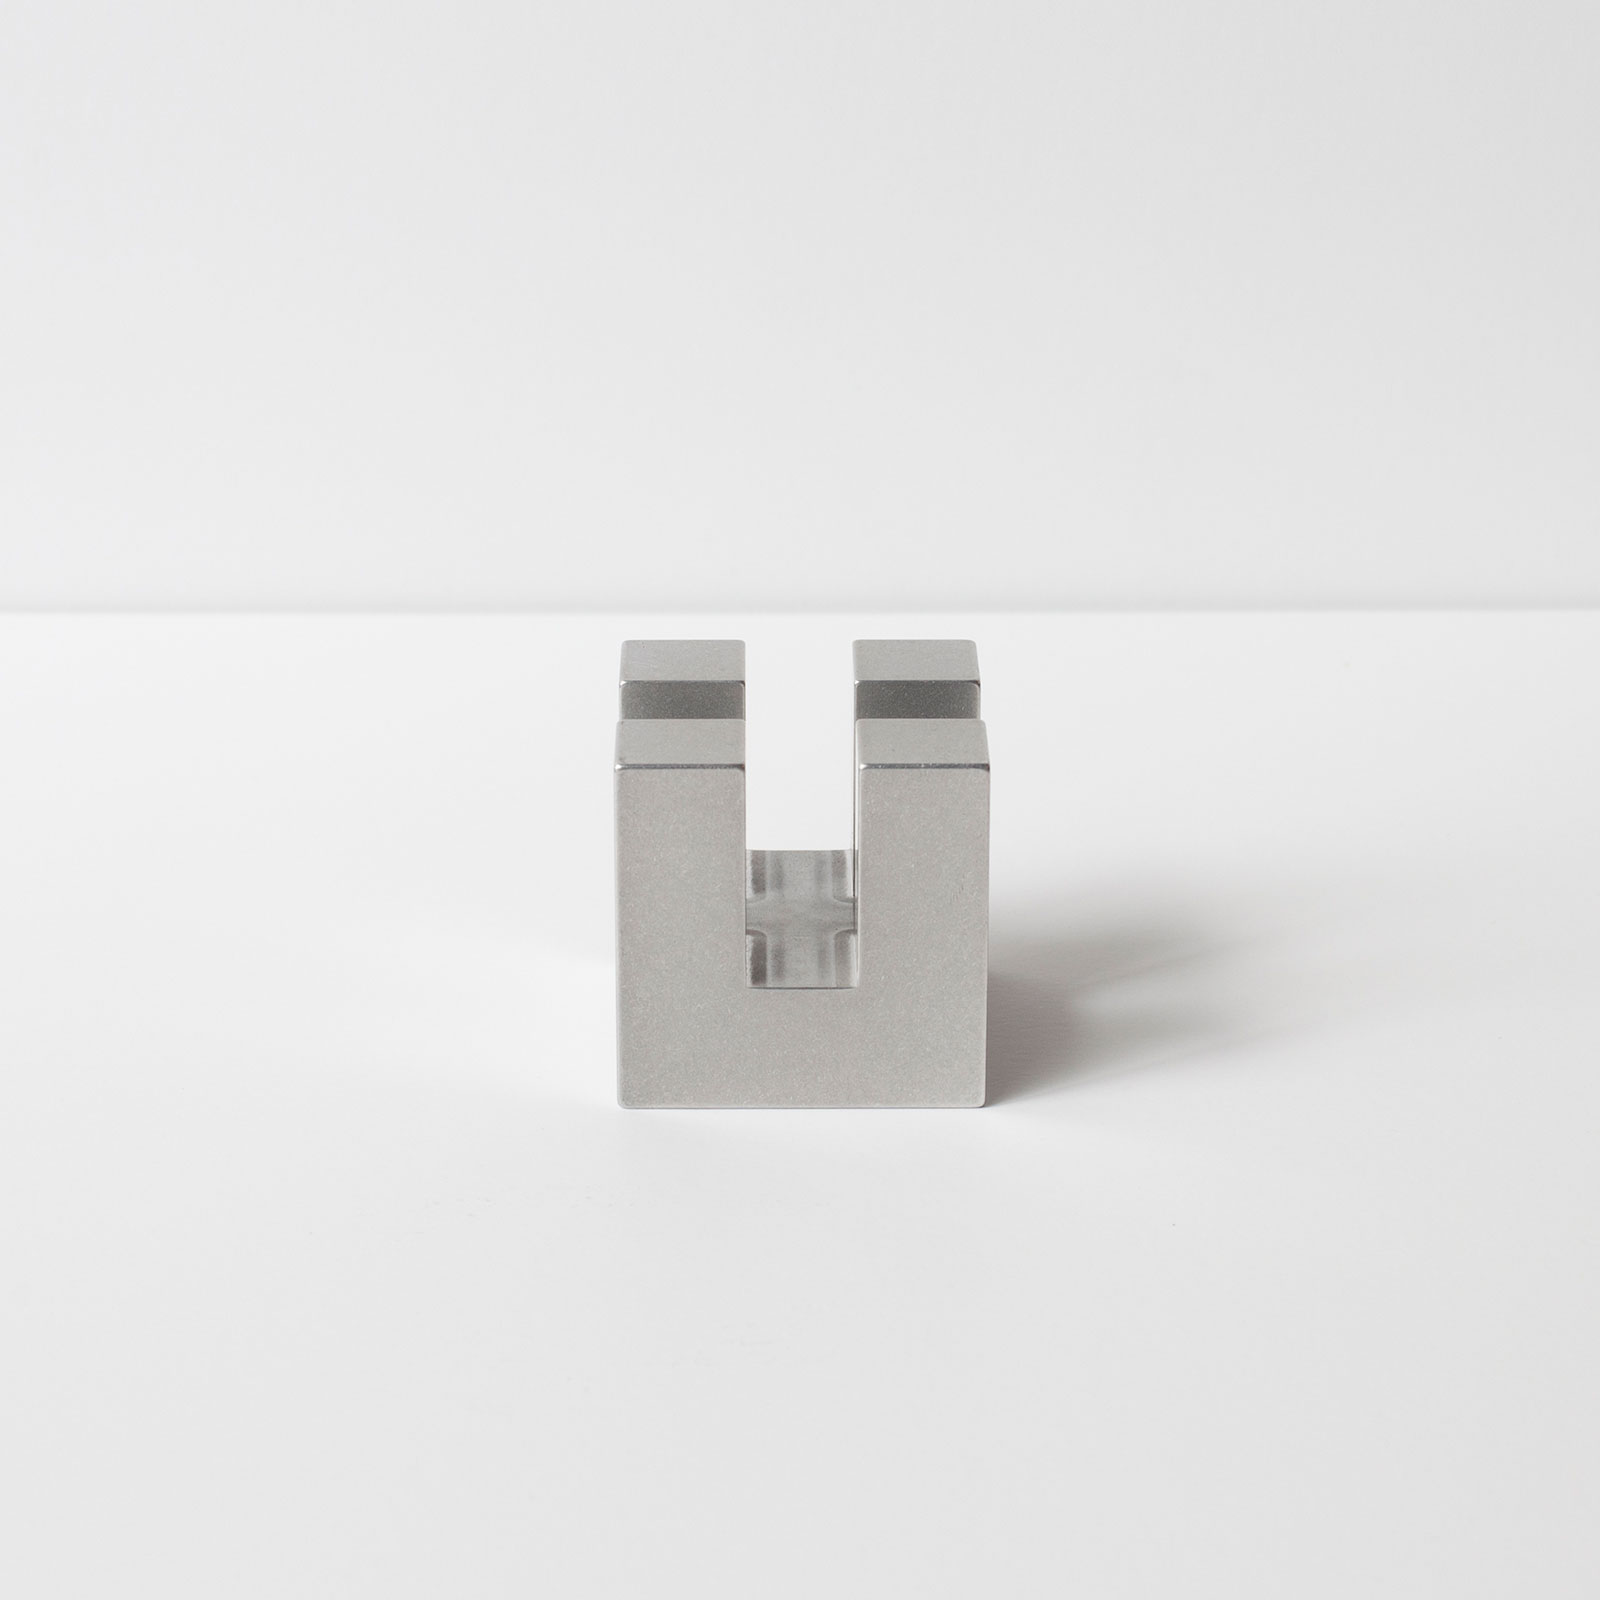 Jeff Low Candle Holder Aluminium By Studio Acs Hero 3